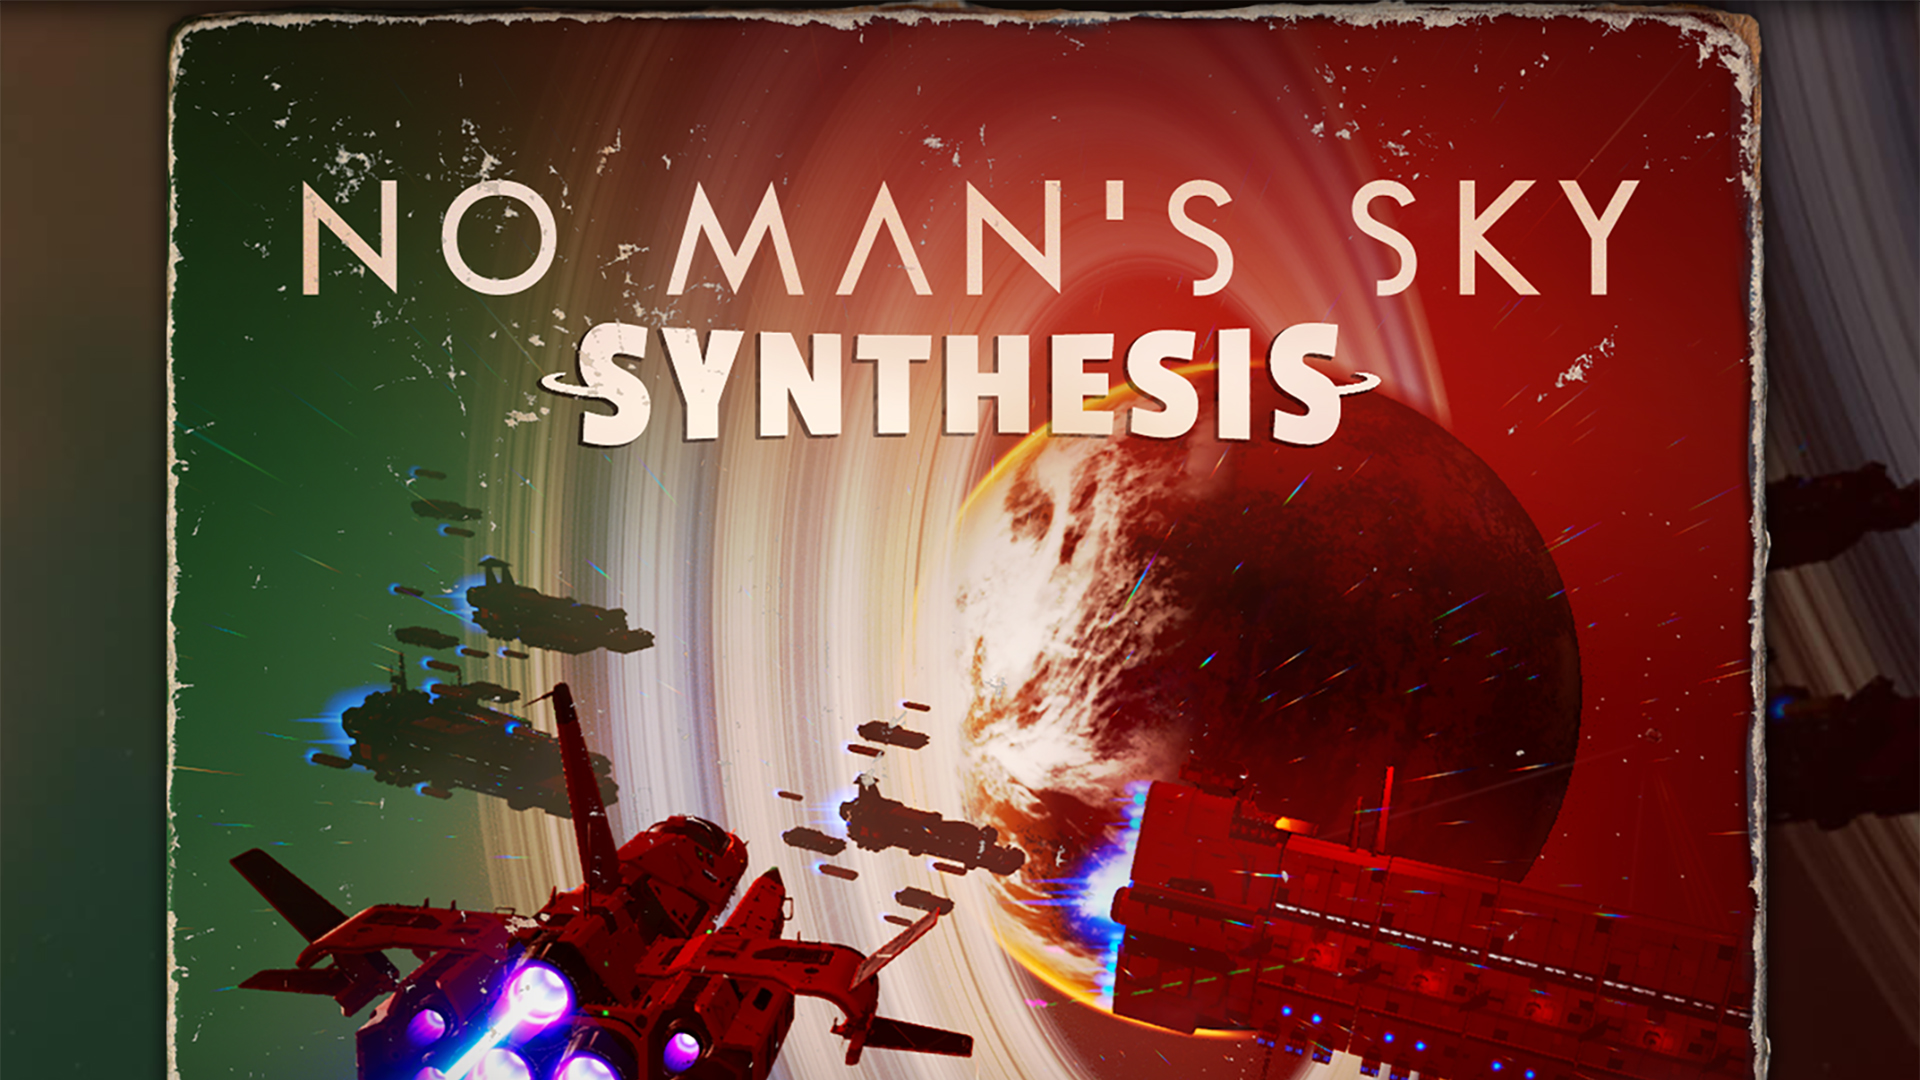 No Man's Sky Synthesis Update Is Here! 297 Changes - Multiple Multitools, Salvaging Ships & More!